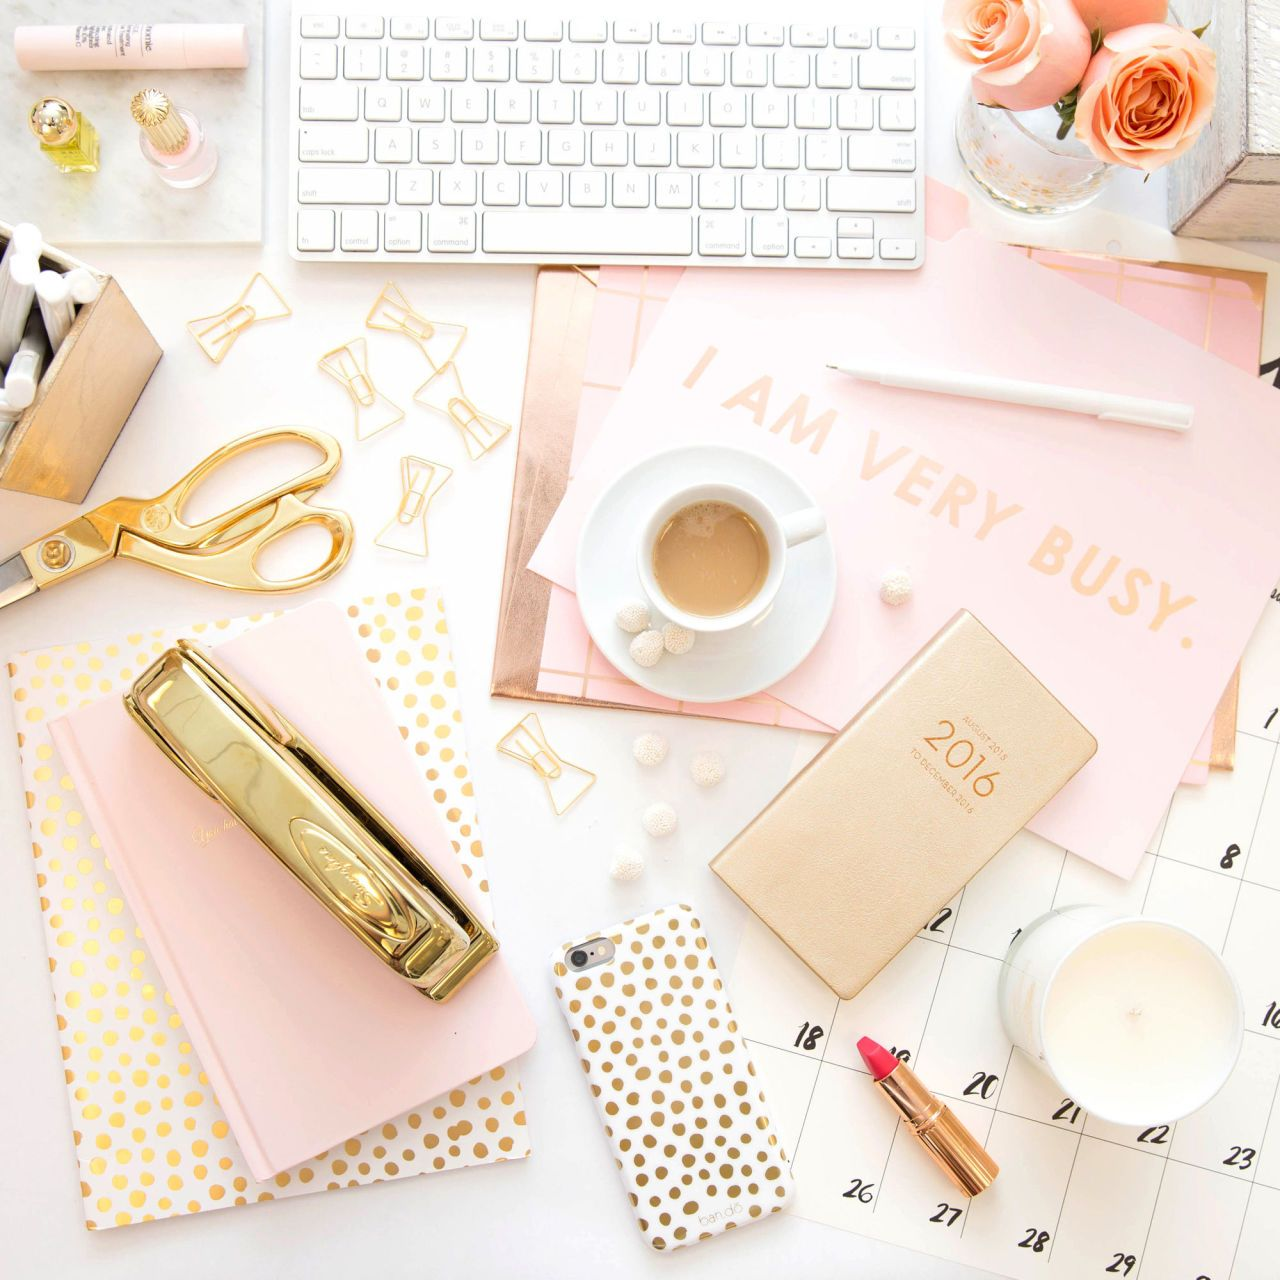 25 Desk Accessories That Will Make Your Workspace Chic Af